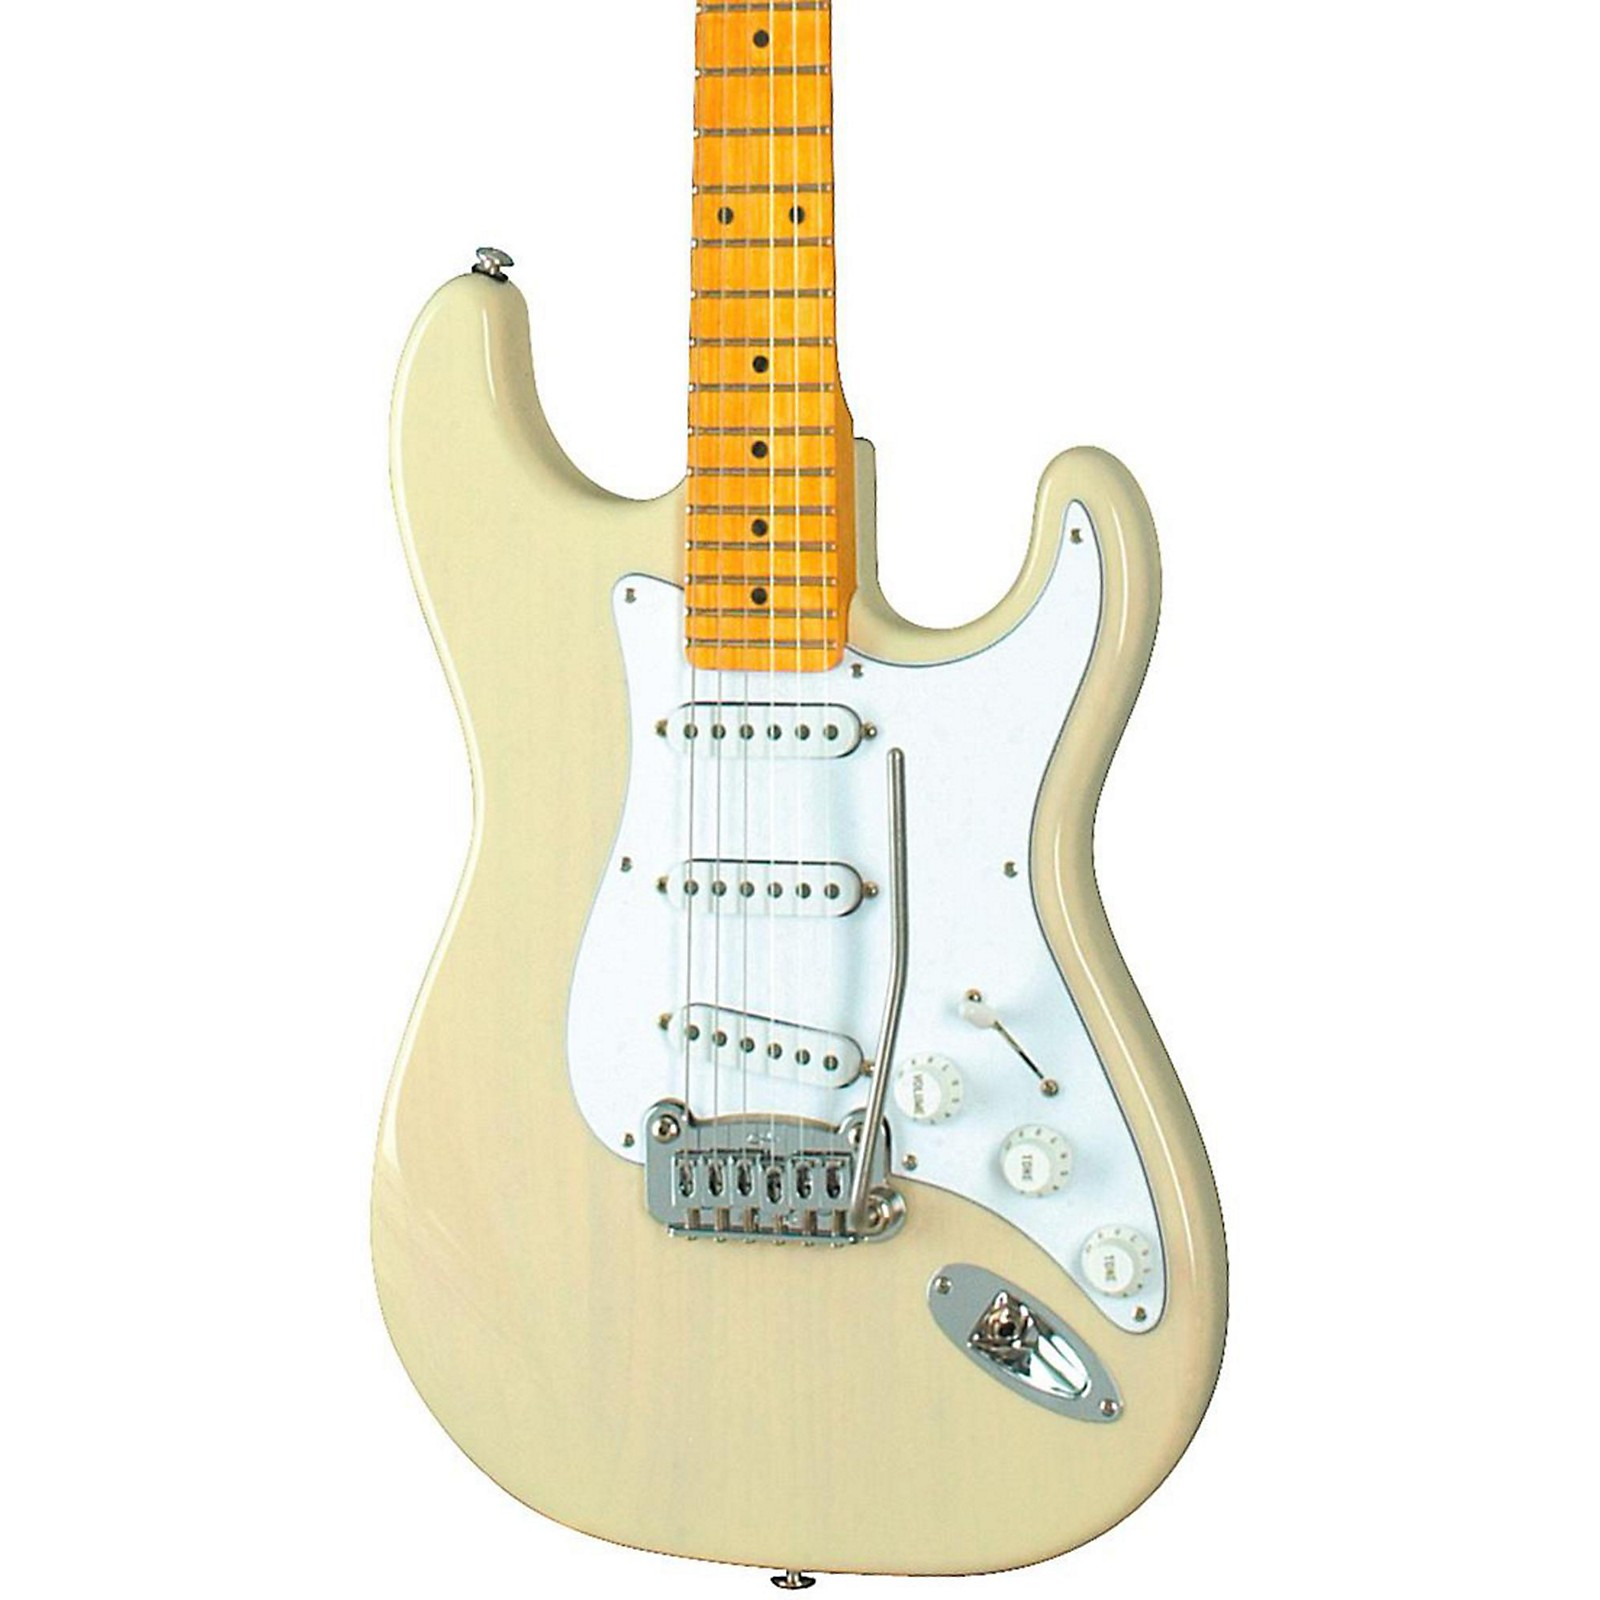 G&L Legacy Electric Guitar with Tinted Maple Neck